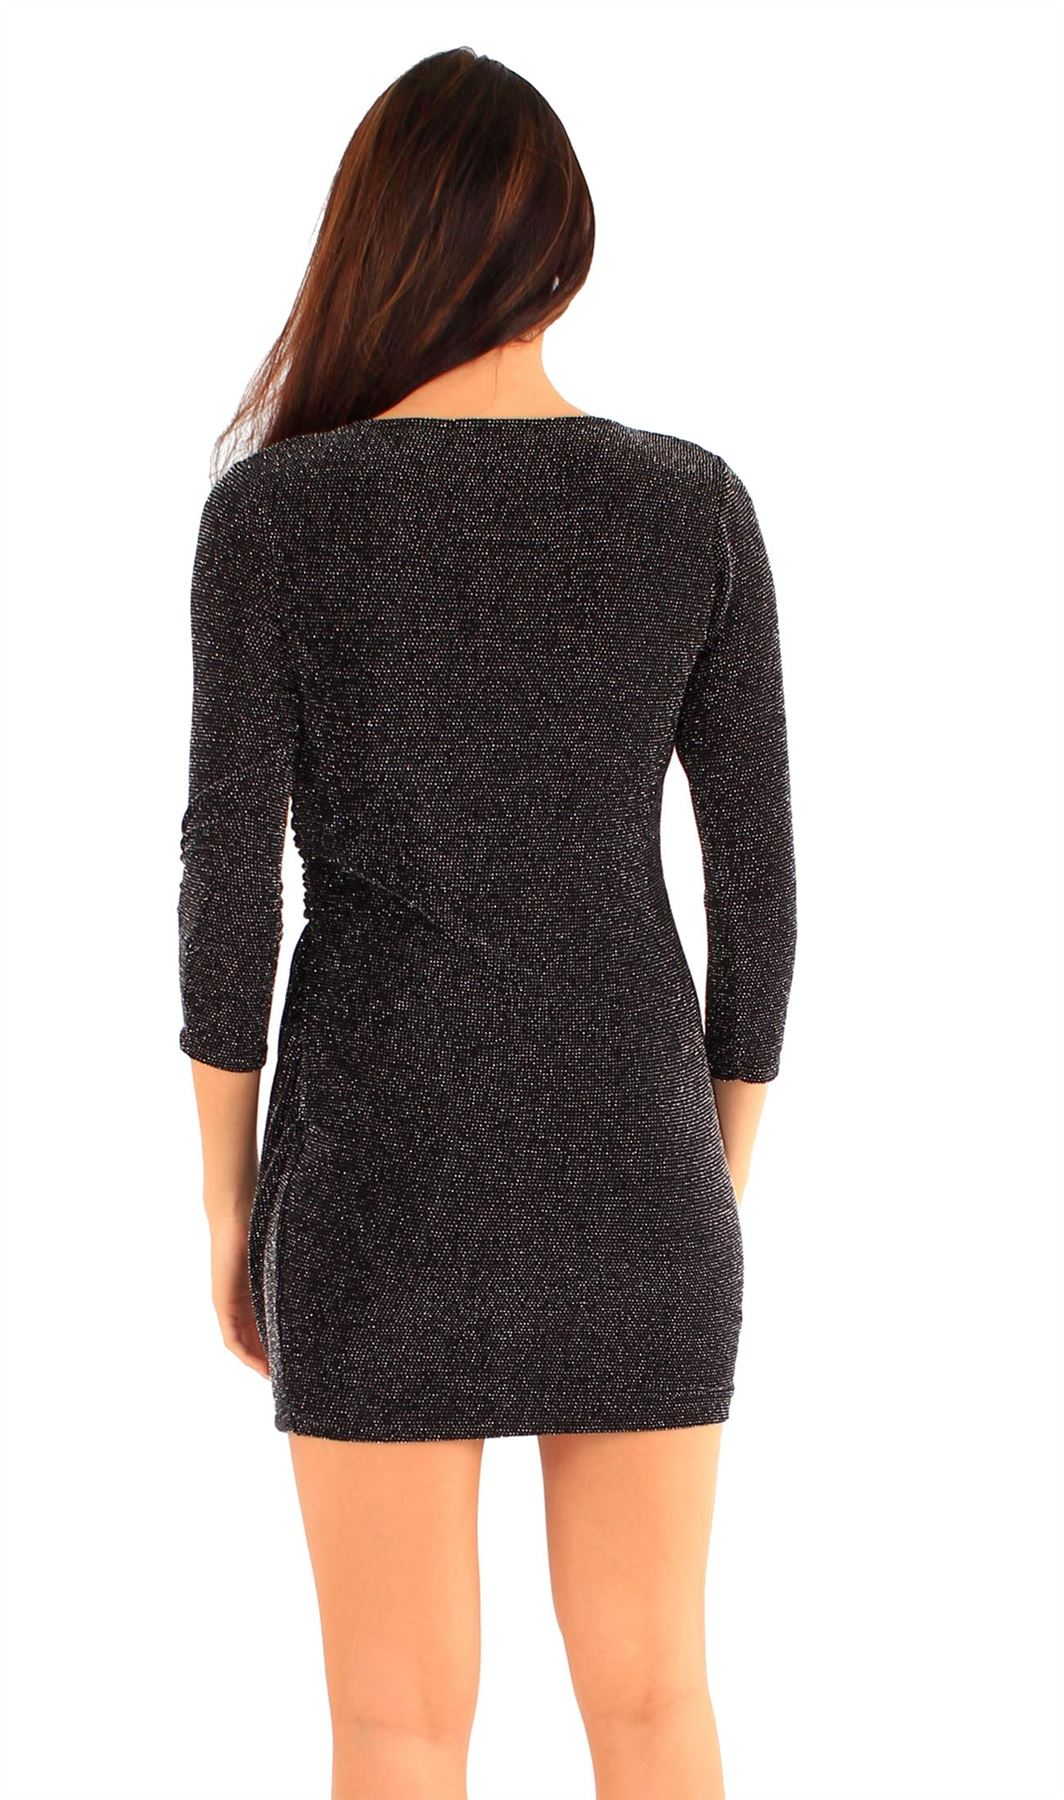 New Womens Sparkle Warp Over Going out ¾ Sleeve Evening Drape Dress 8-14